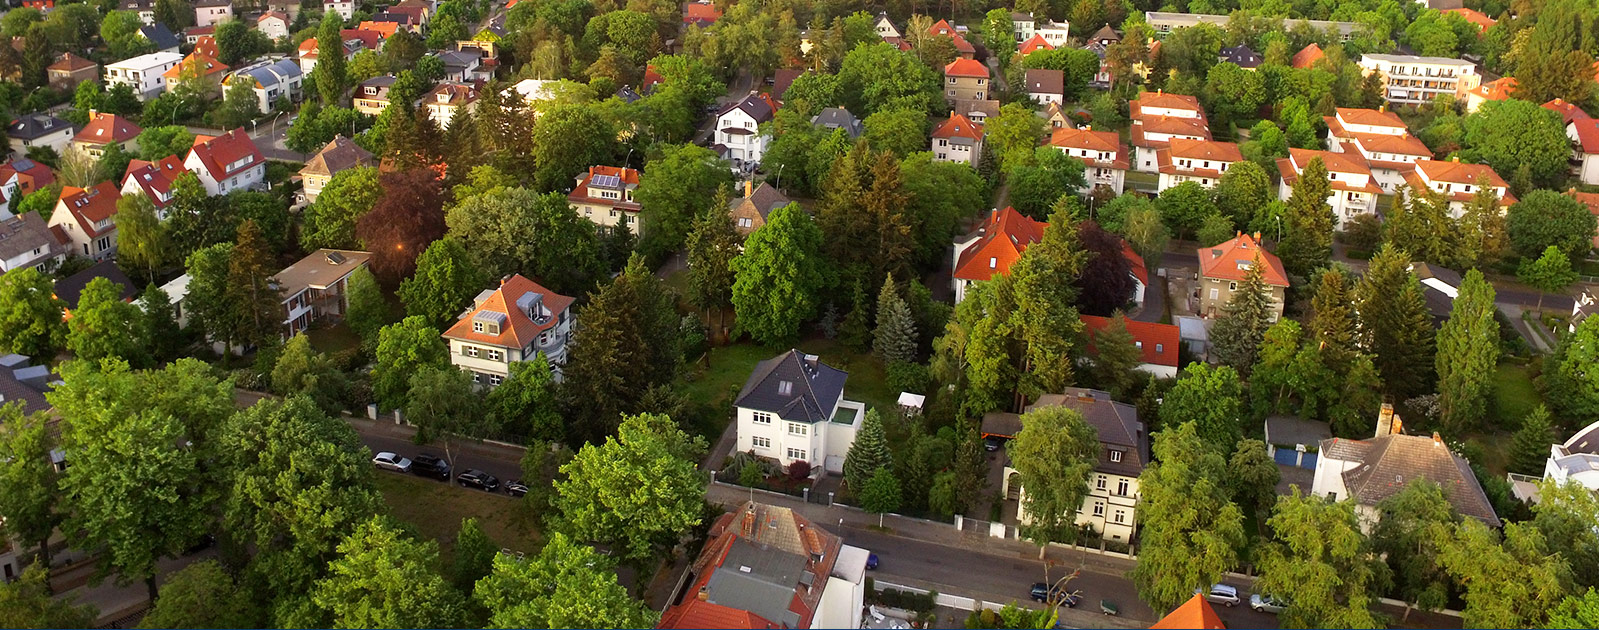 neighborhood overhead view